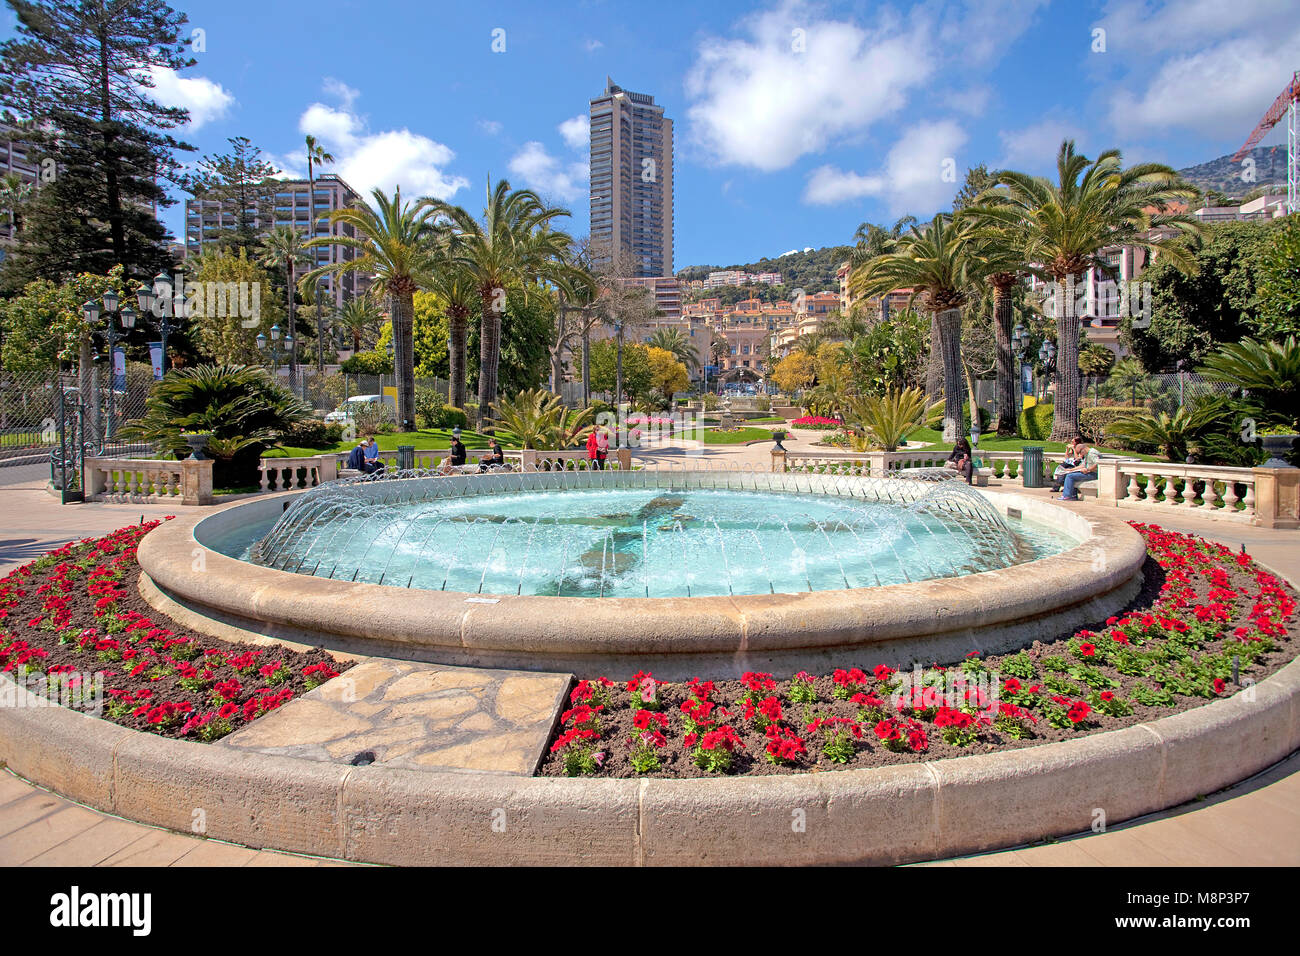 View from the park at Place du Casino on Boulevard des Moulin, Monte Carlo, Principality of Monaco, Côte d'Azur, - Stock Image